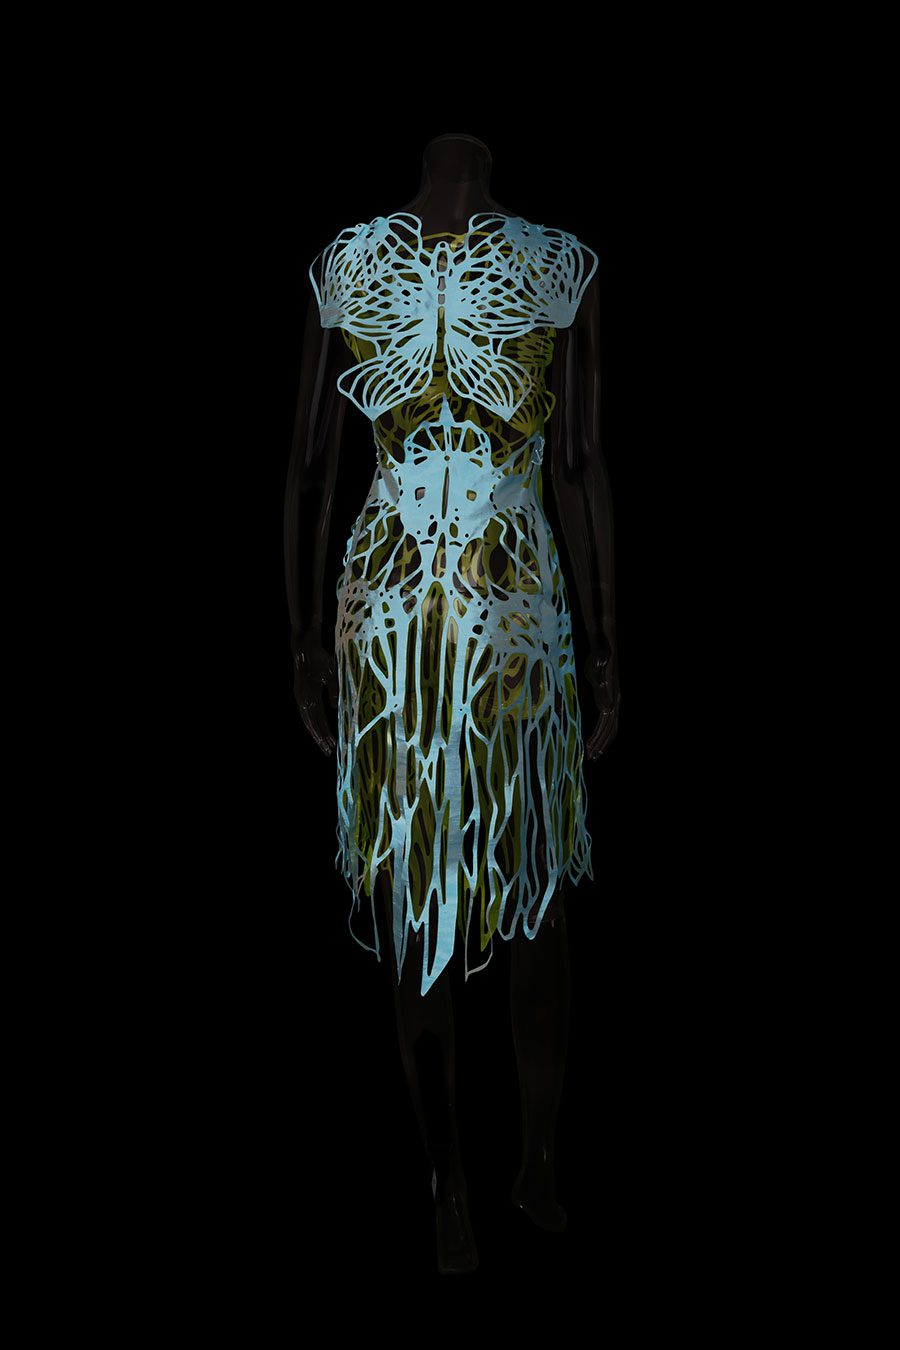 2017-Amy-Karle-Internal-Collection-Blue-silk-dress-based-on-ligaments05